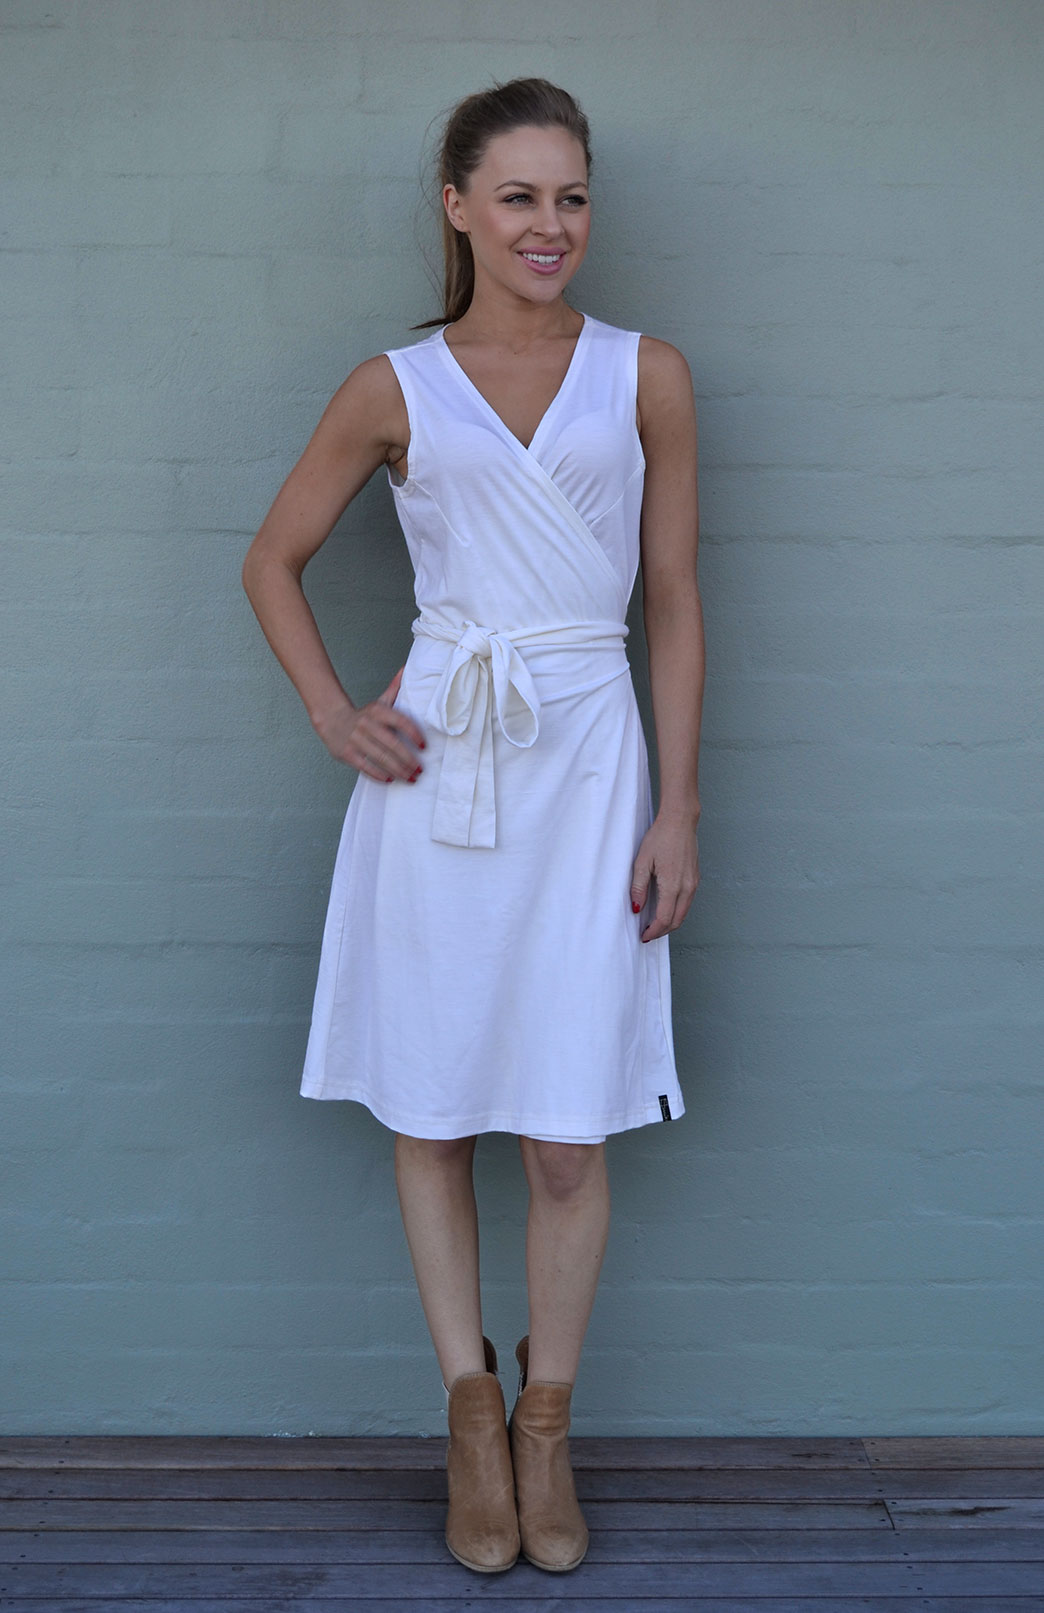 Wrap Dress - Sleeveless - Women's Ivory Merino Wool Sleeveless Wrap Dress with Ties - Smitten Merino Tasmania Australia